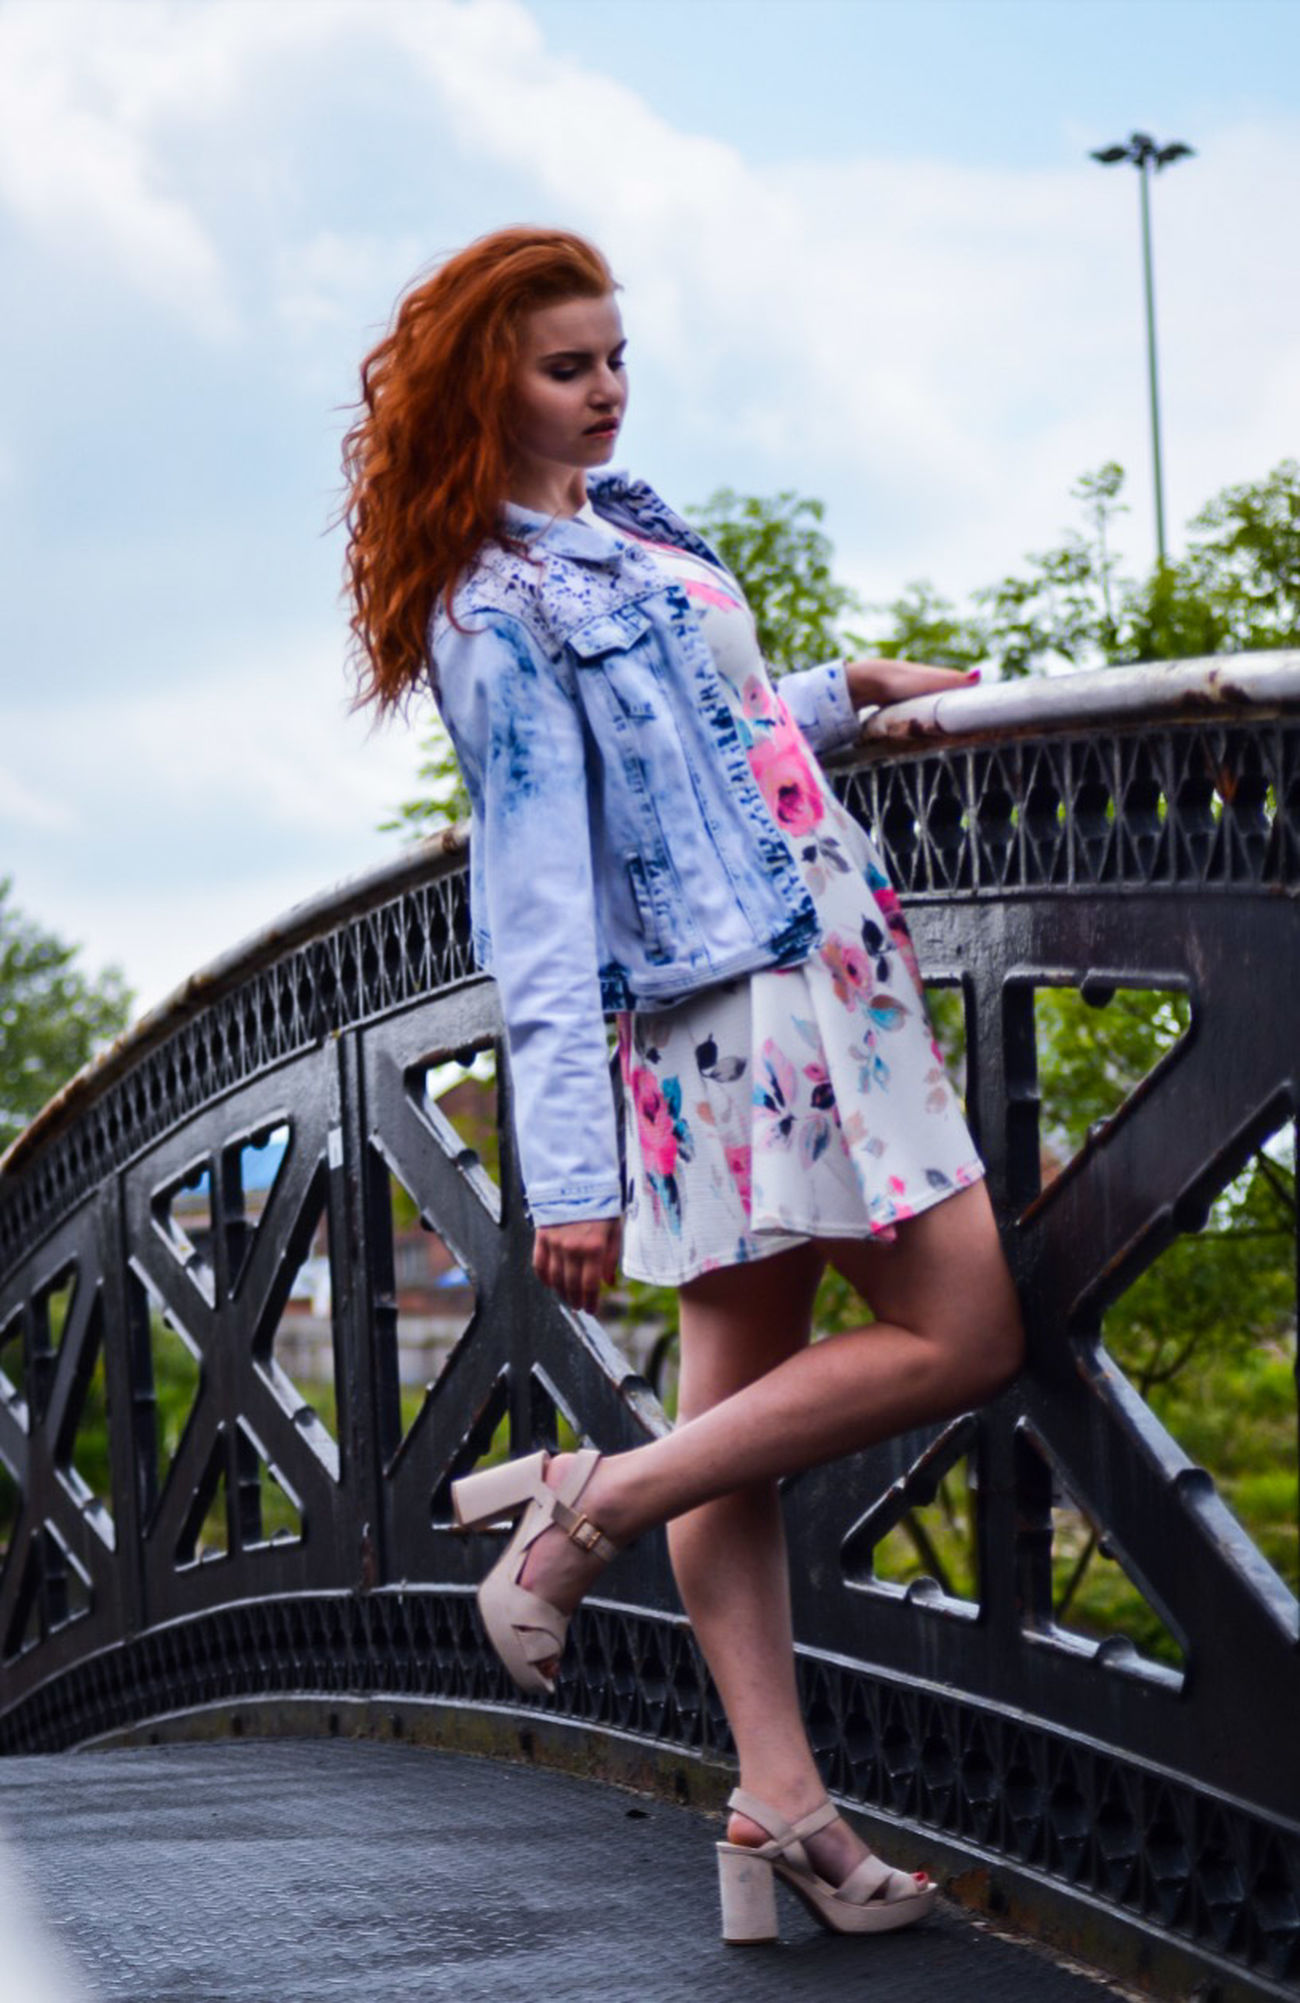 Redhead Long Hair Casual Clothing Fashion Full Length Bridge - Man Made Structure Beautiful Woman Leisure Activity Outdoors Well-dressed Standing Model Life Inspirations Desinger Dress Code Fashion Model Glamour Shots Magazine Lifestyles Green Color Glamour Fashion Beauty Sky And Clouds Bridge